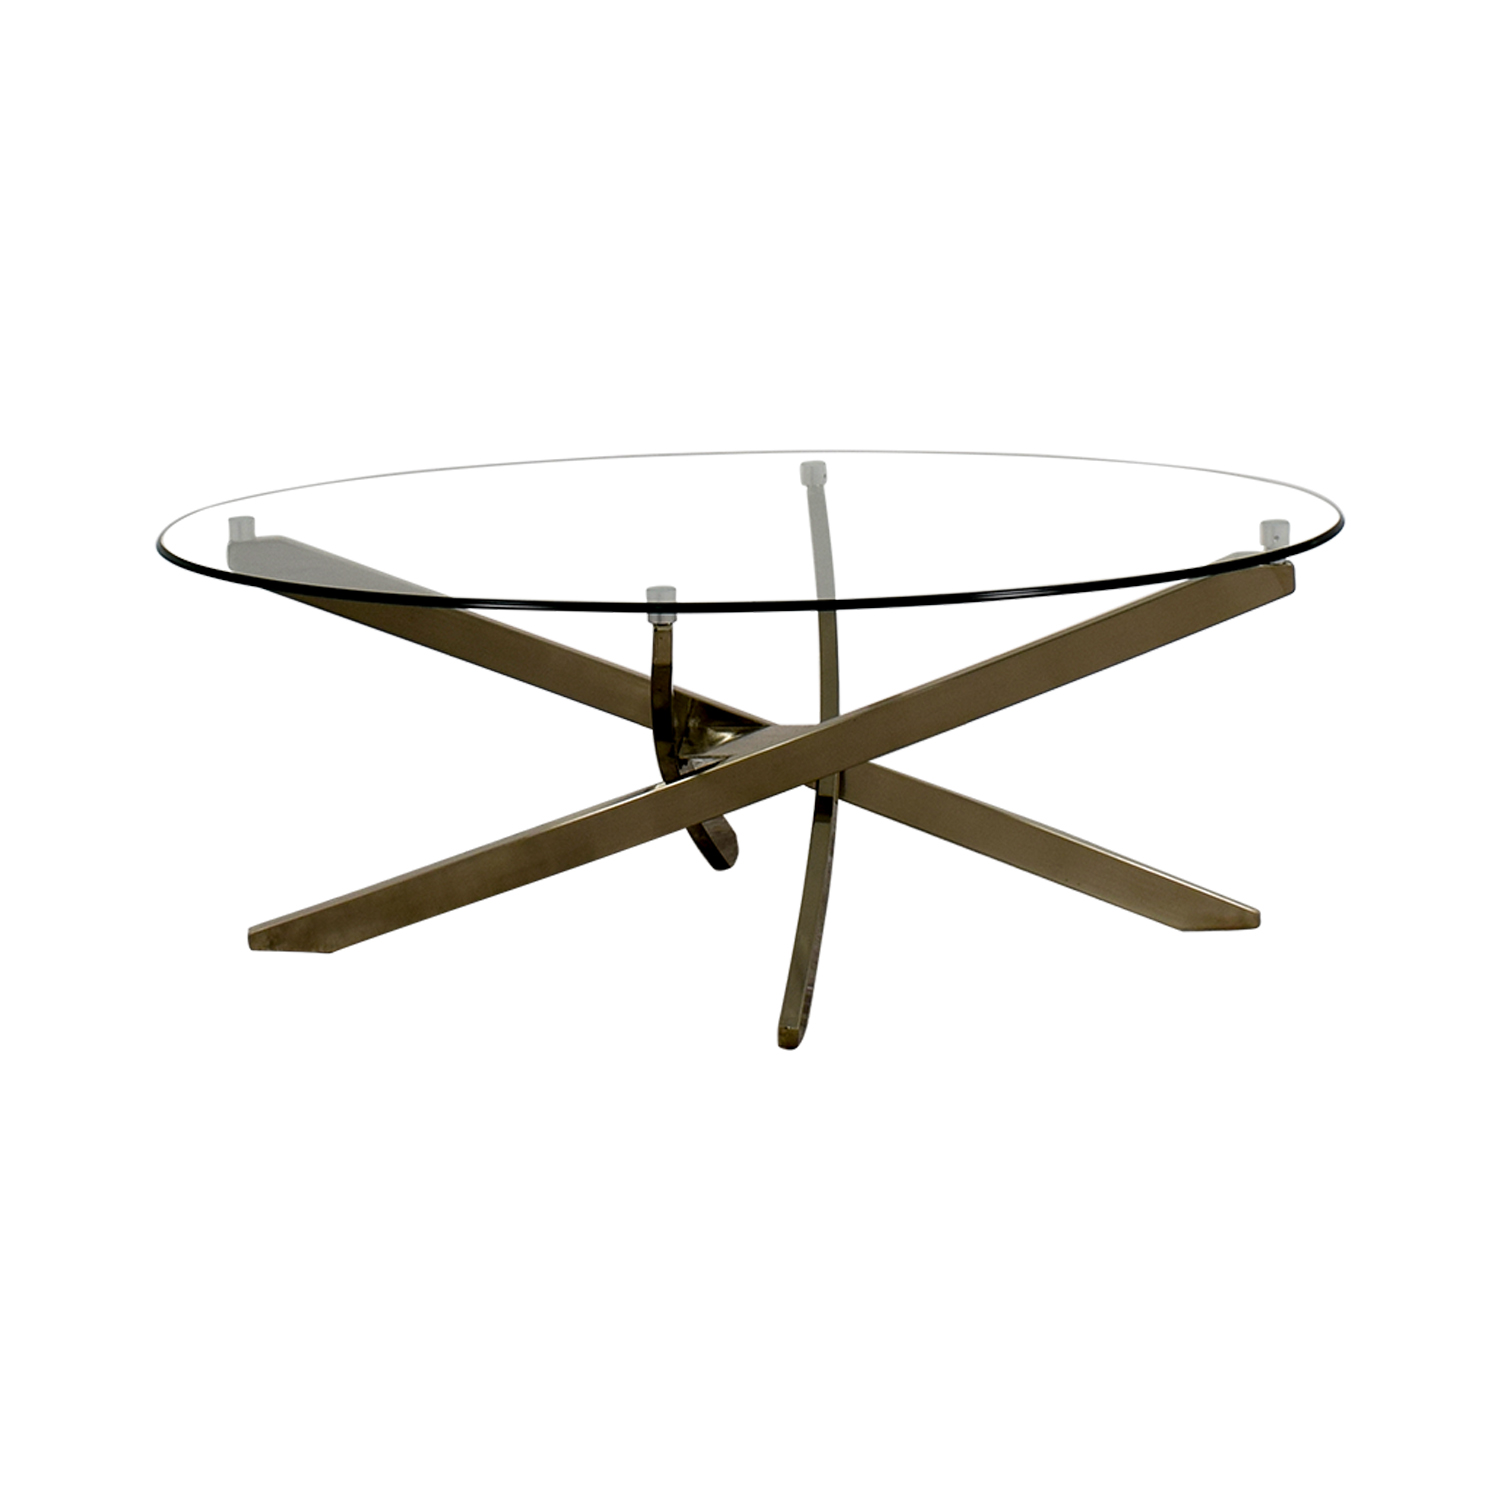 Raymour & Flanigan Raymour & Flanigan Zila Glass and Chrome Coffee Table for sale